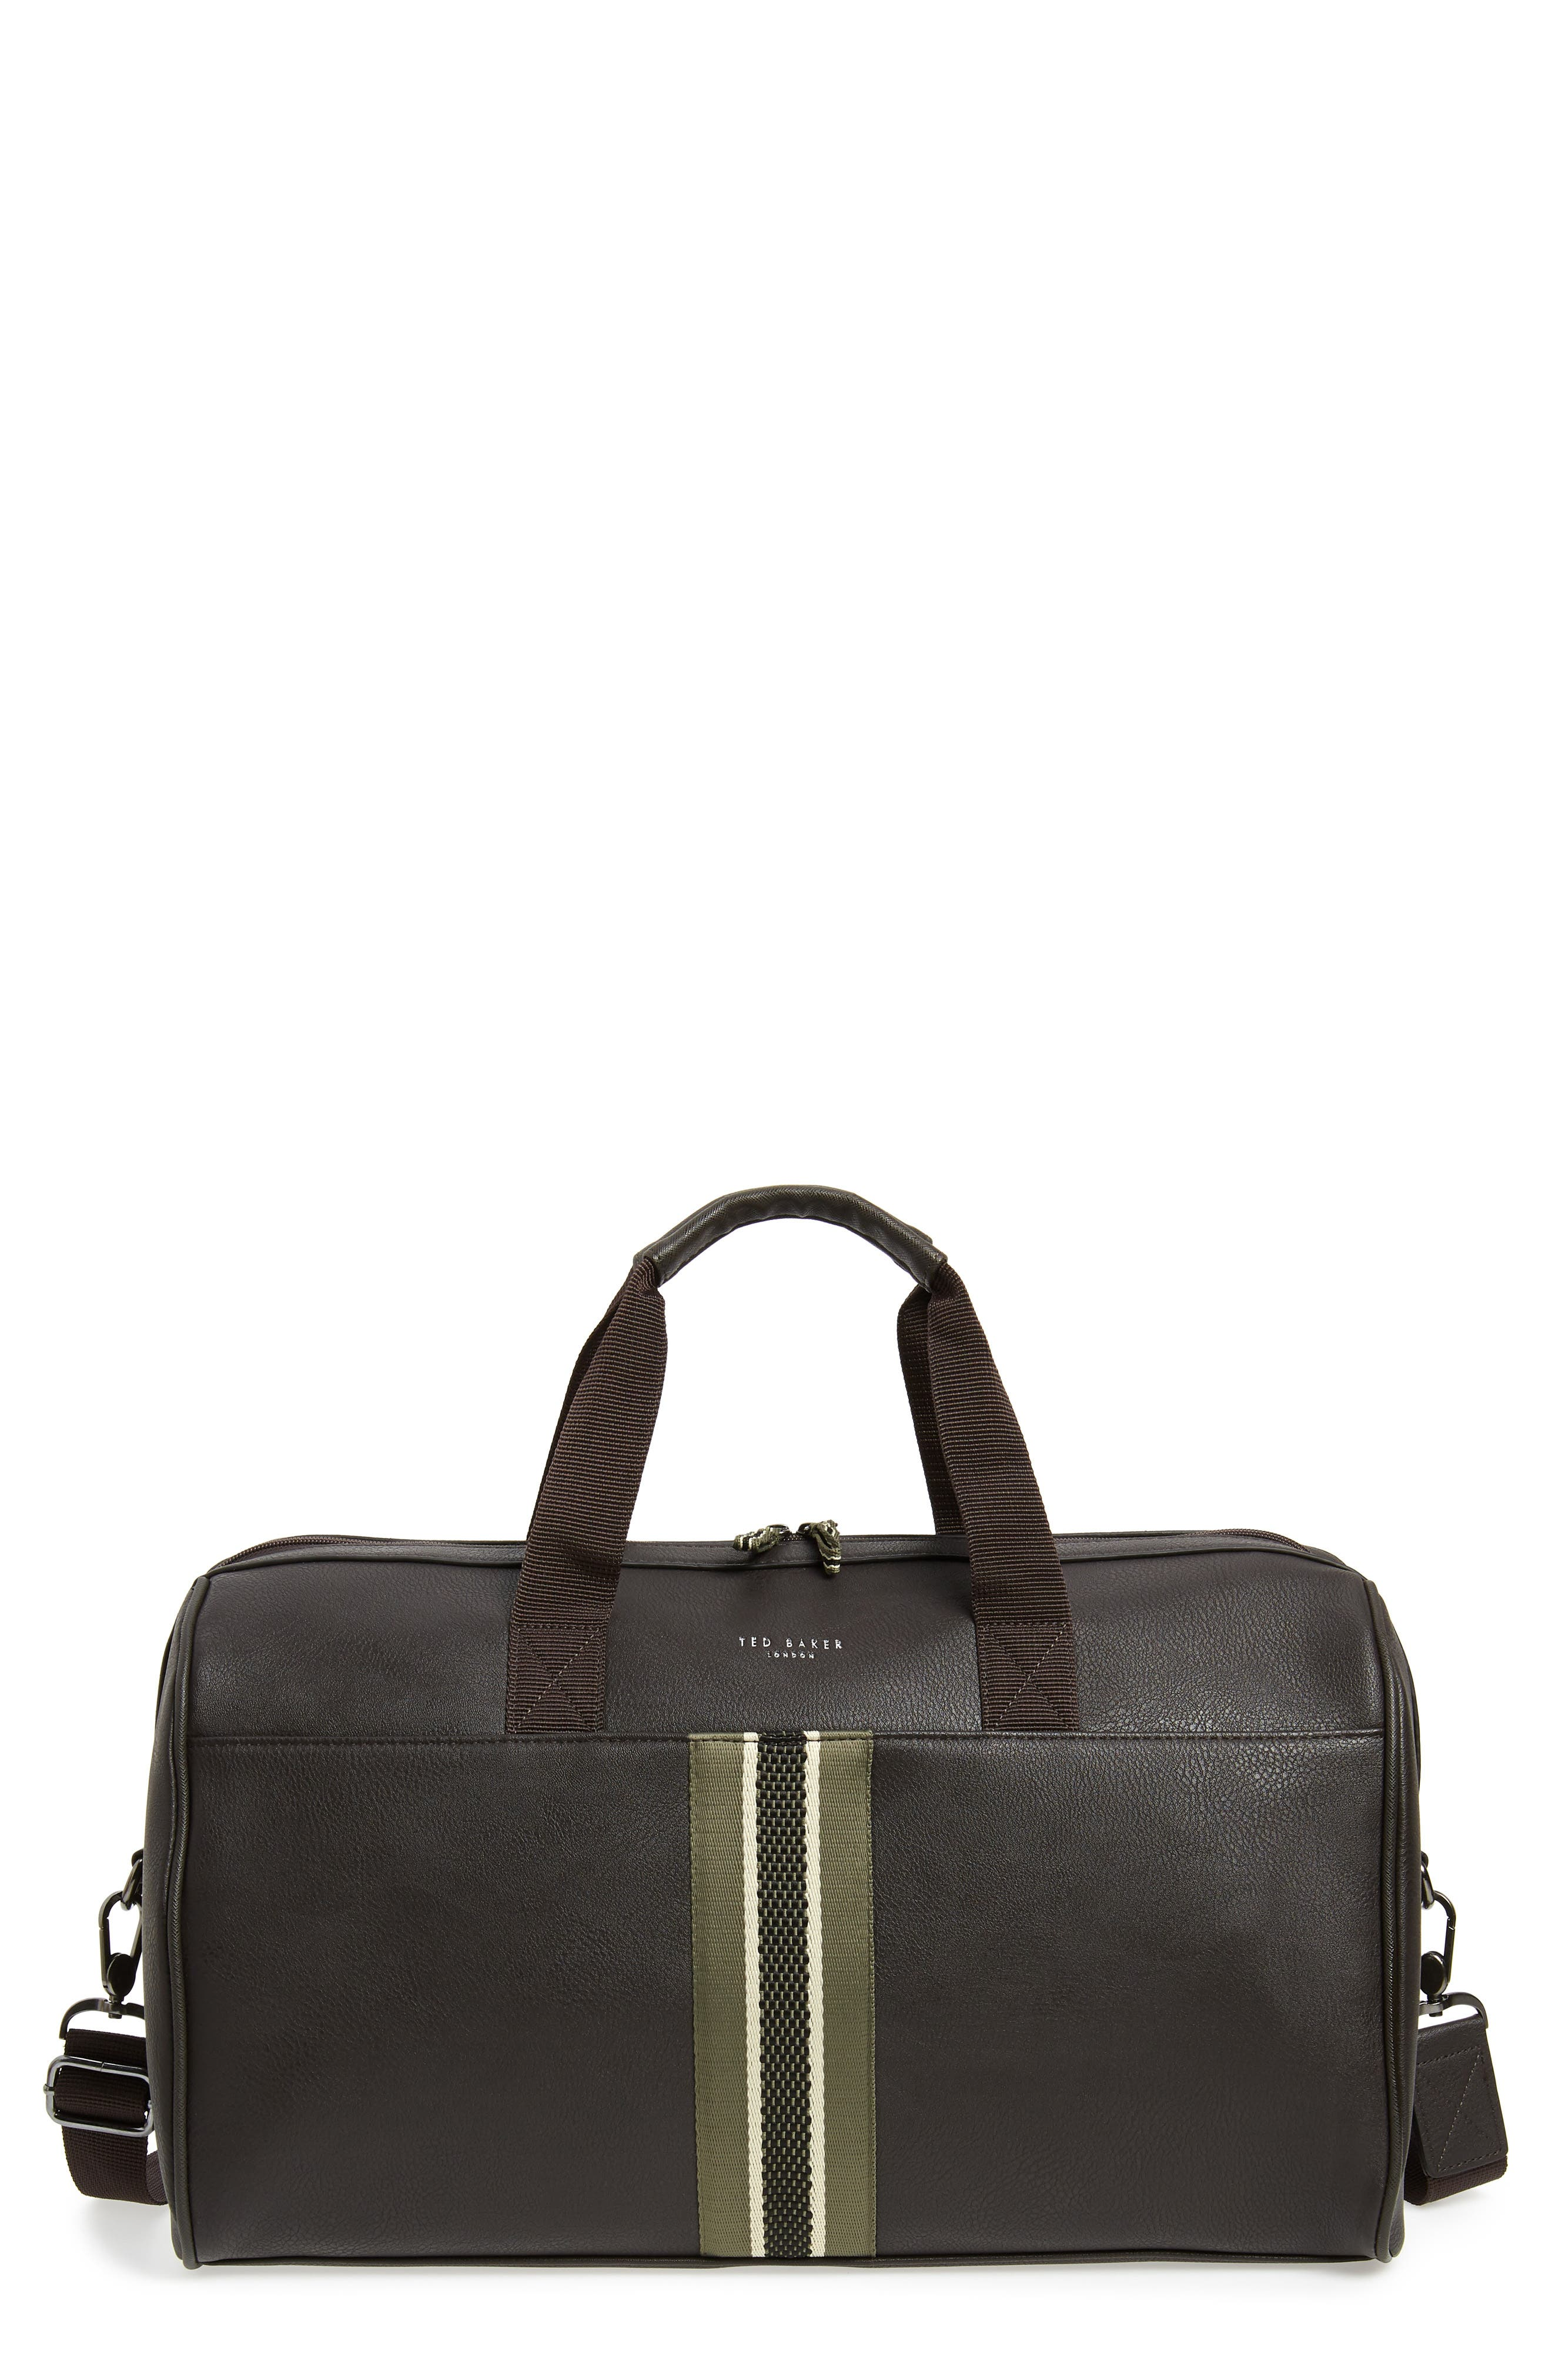 TED BAKER LONDON Webbing Duffle Bag, Main, color, CHOCOLATE